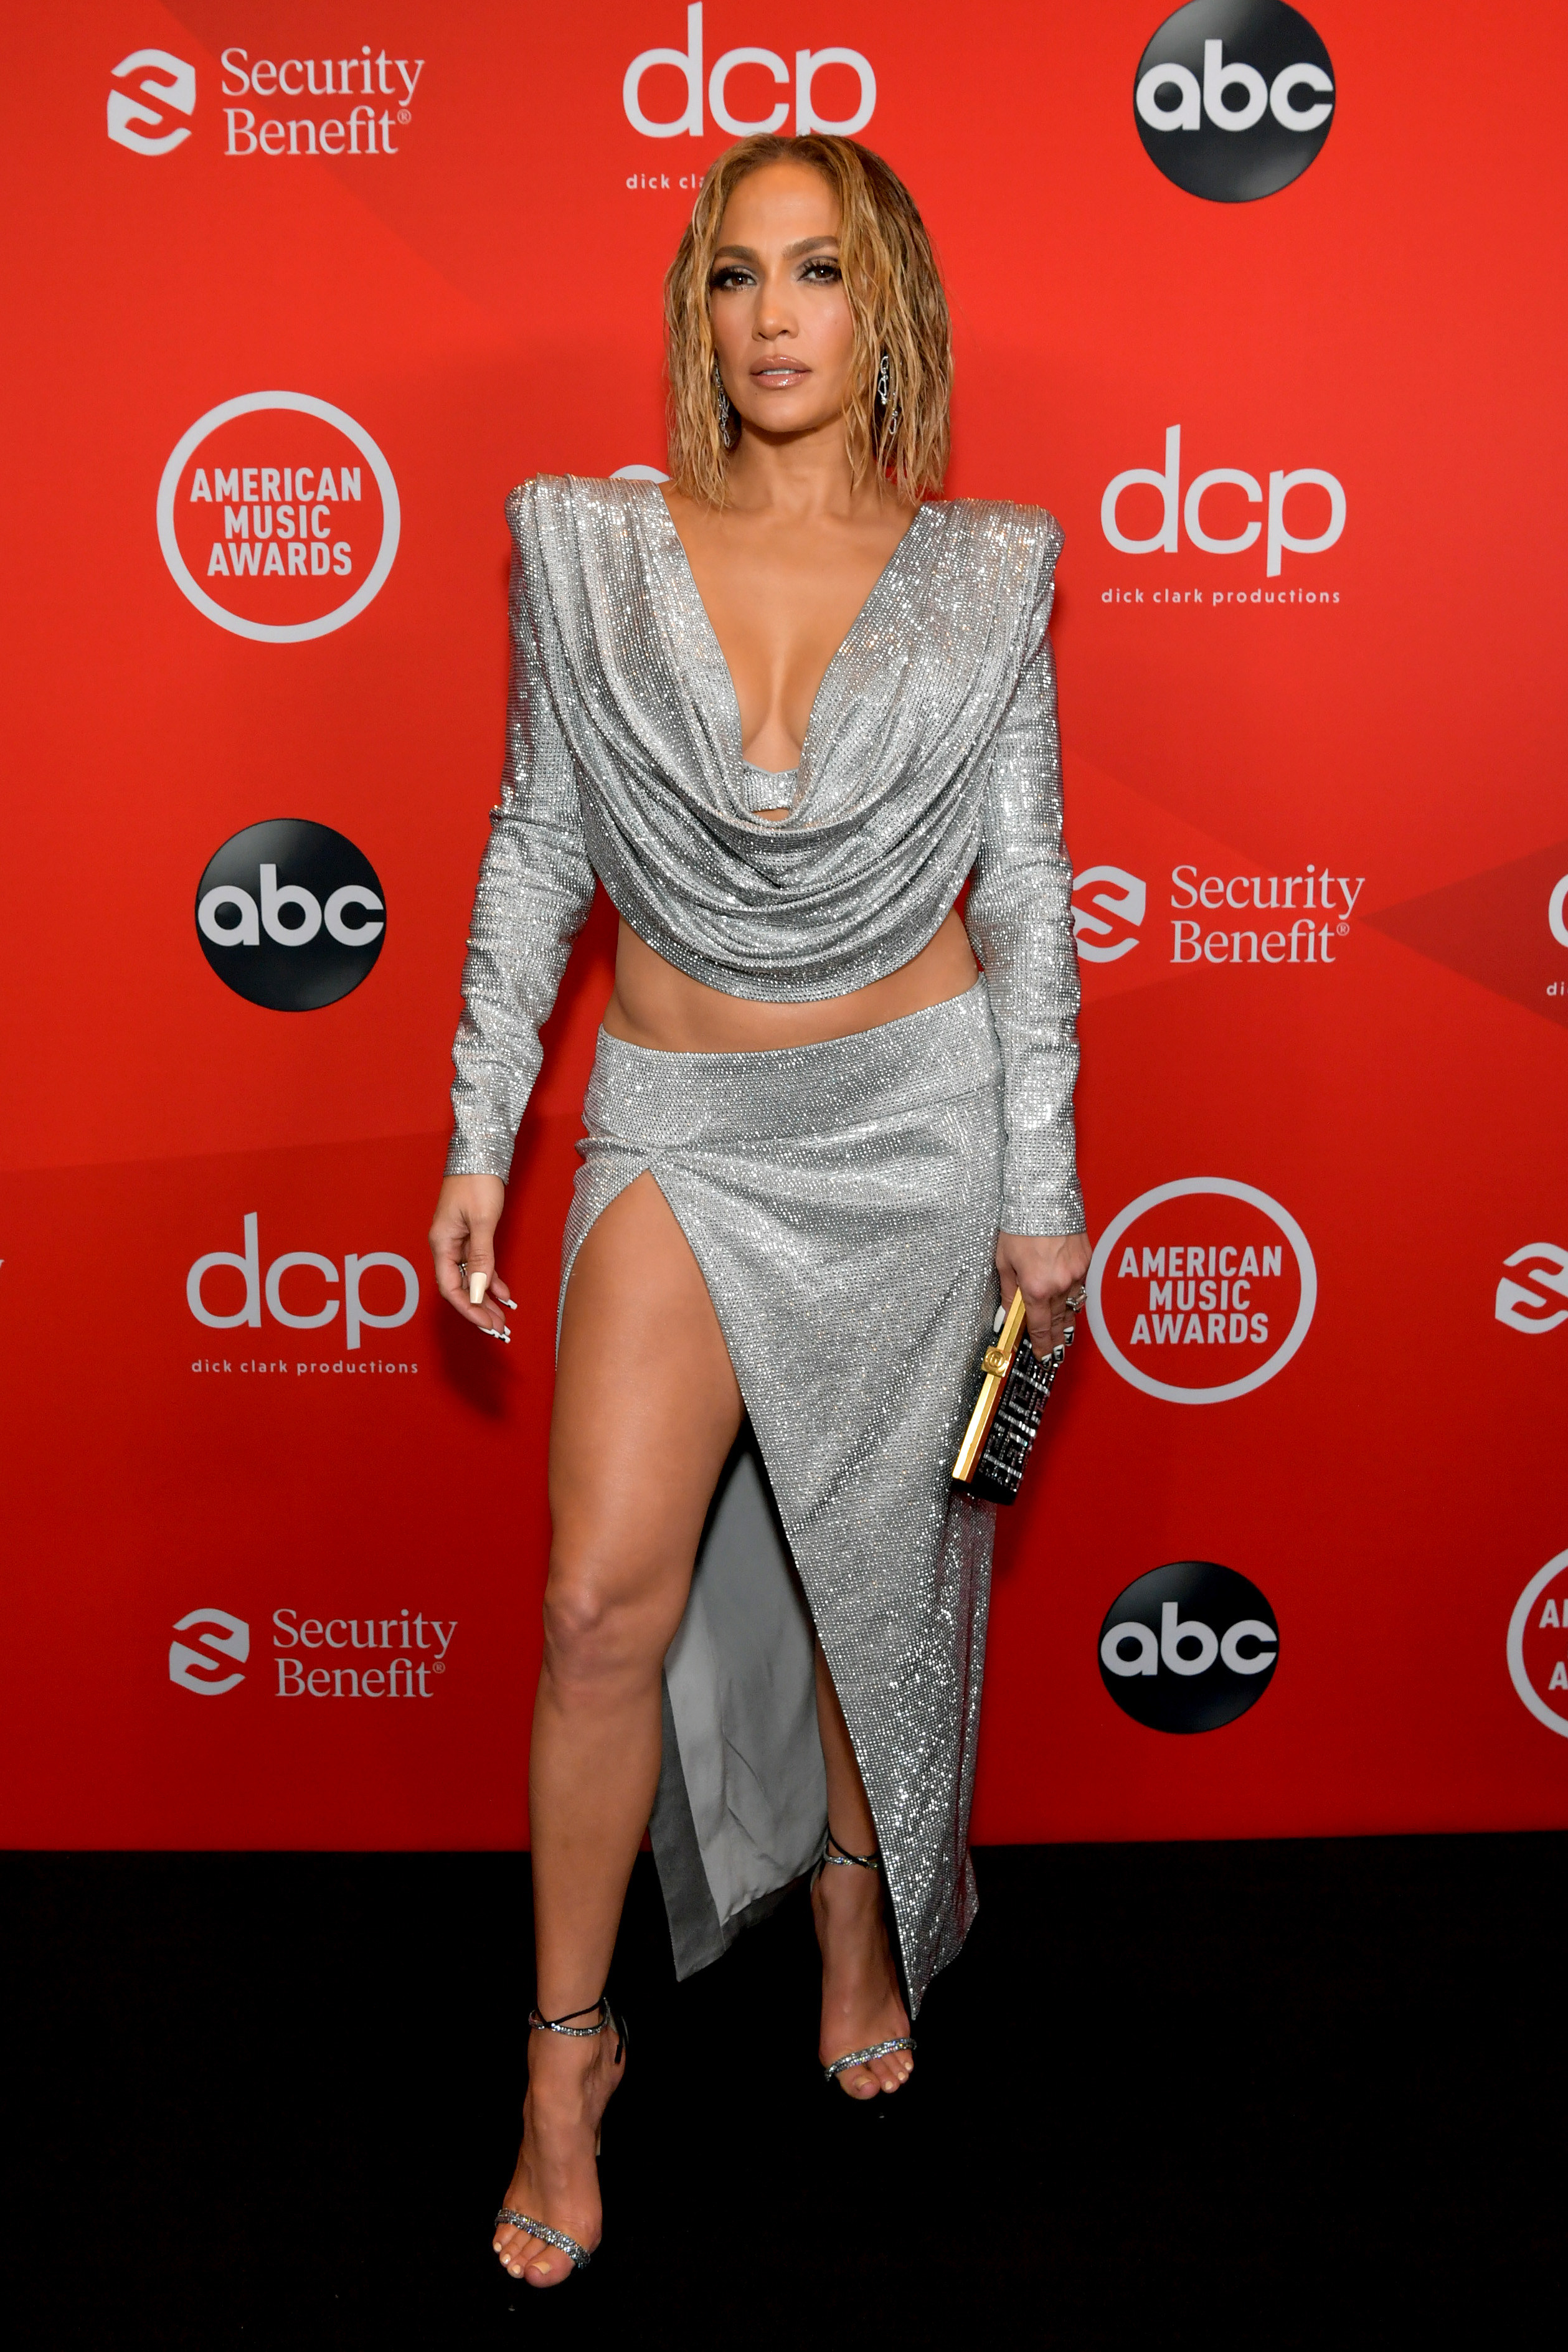 Jennifer Lopez, wearing a sparkly low-cut cowl-neck top and matching skirt, attends the 2020 American Music Awards